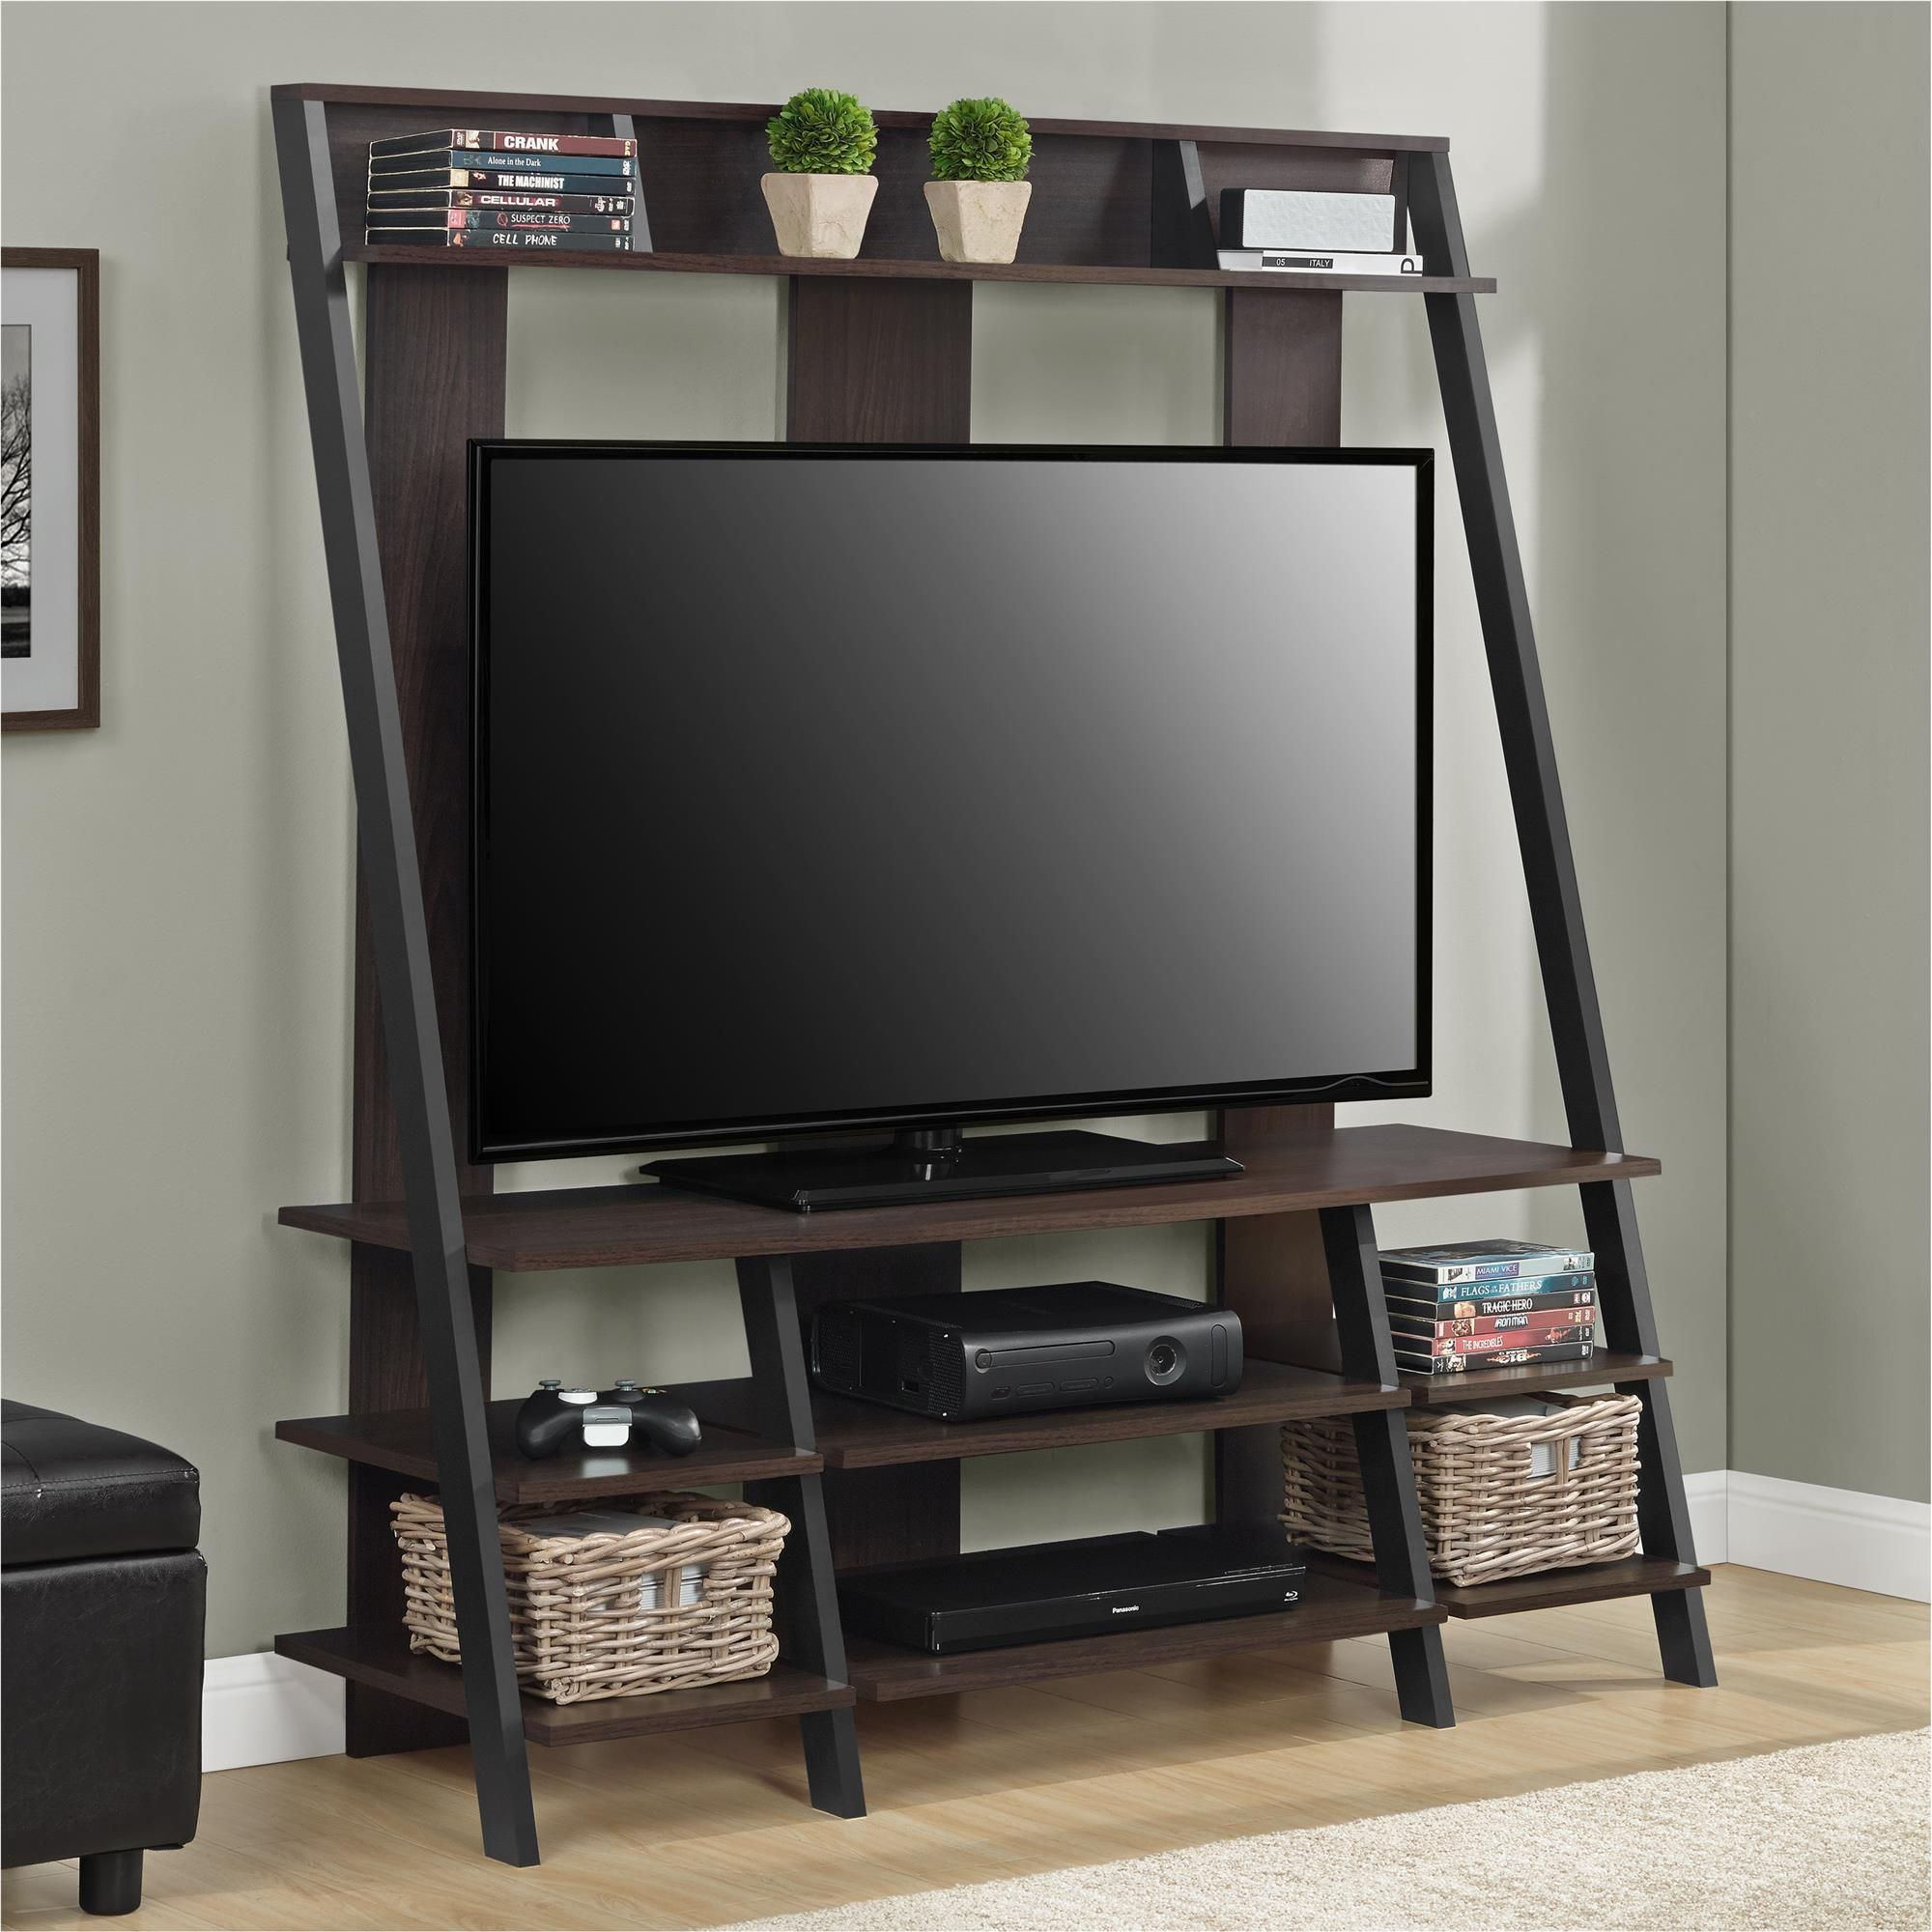 Gorgeous Ladder Style Home Entertainment Center With Multiple Shelves For A V Gear